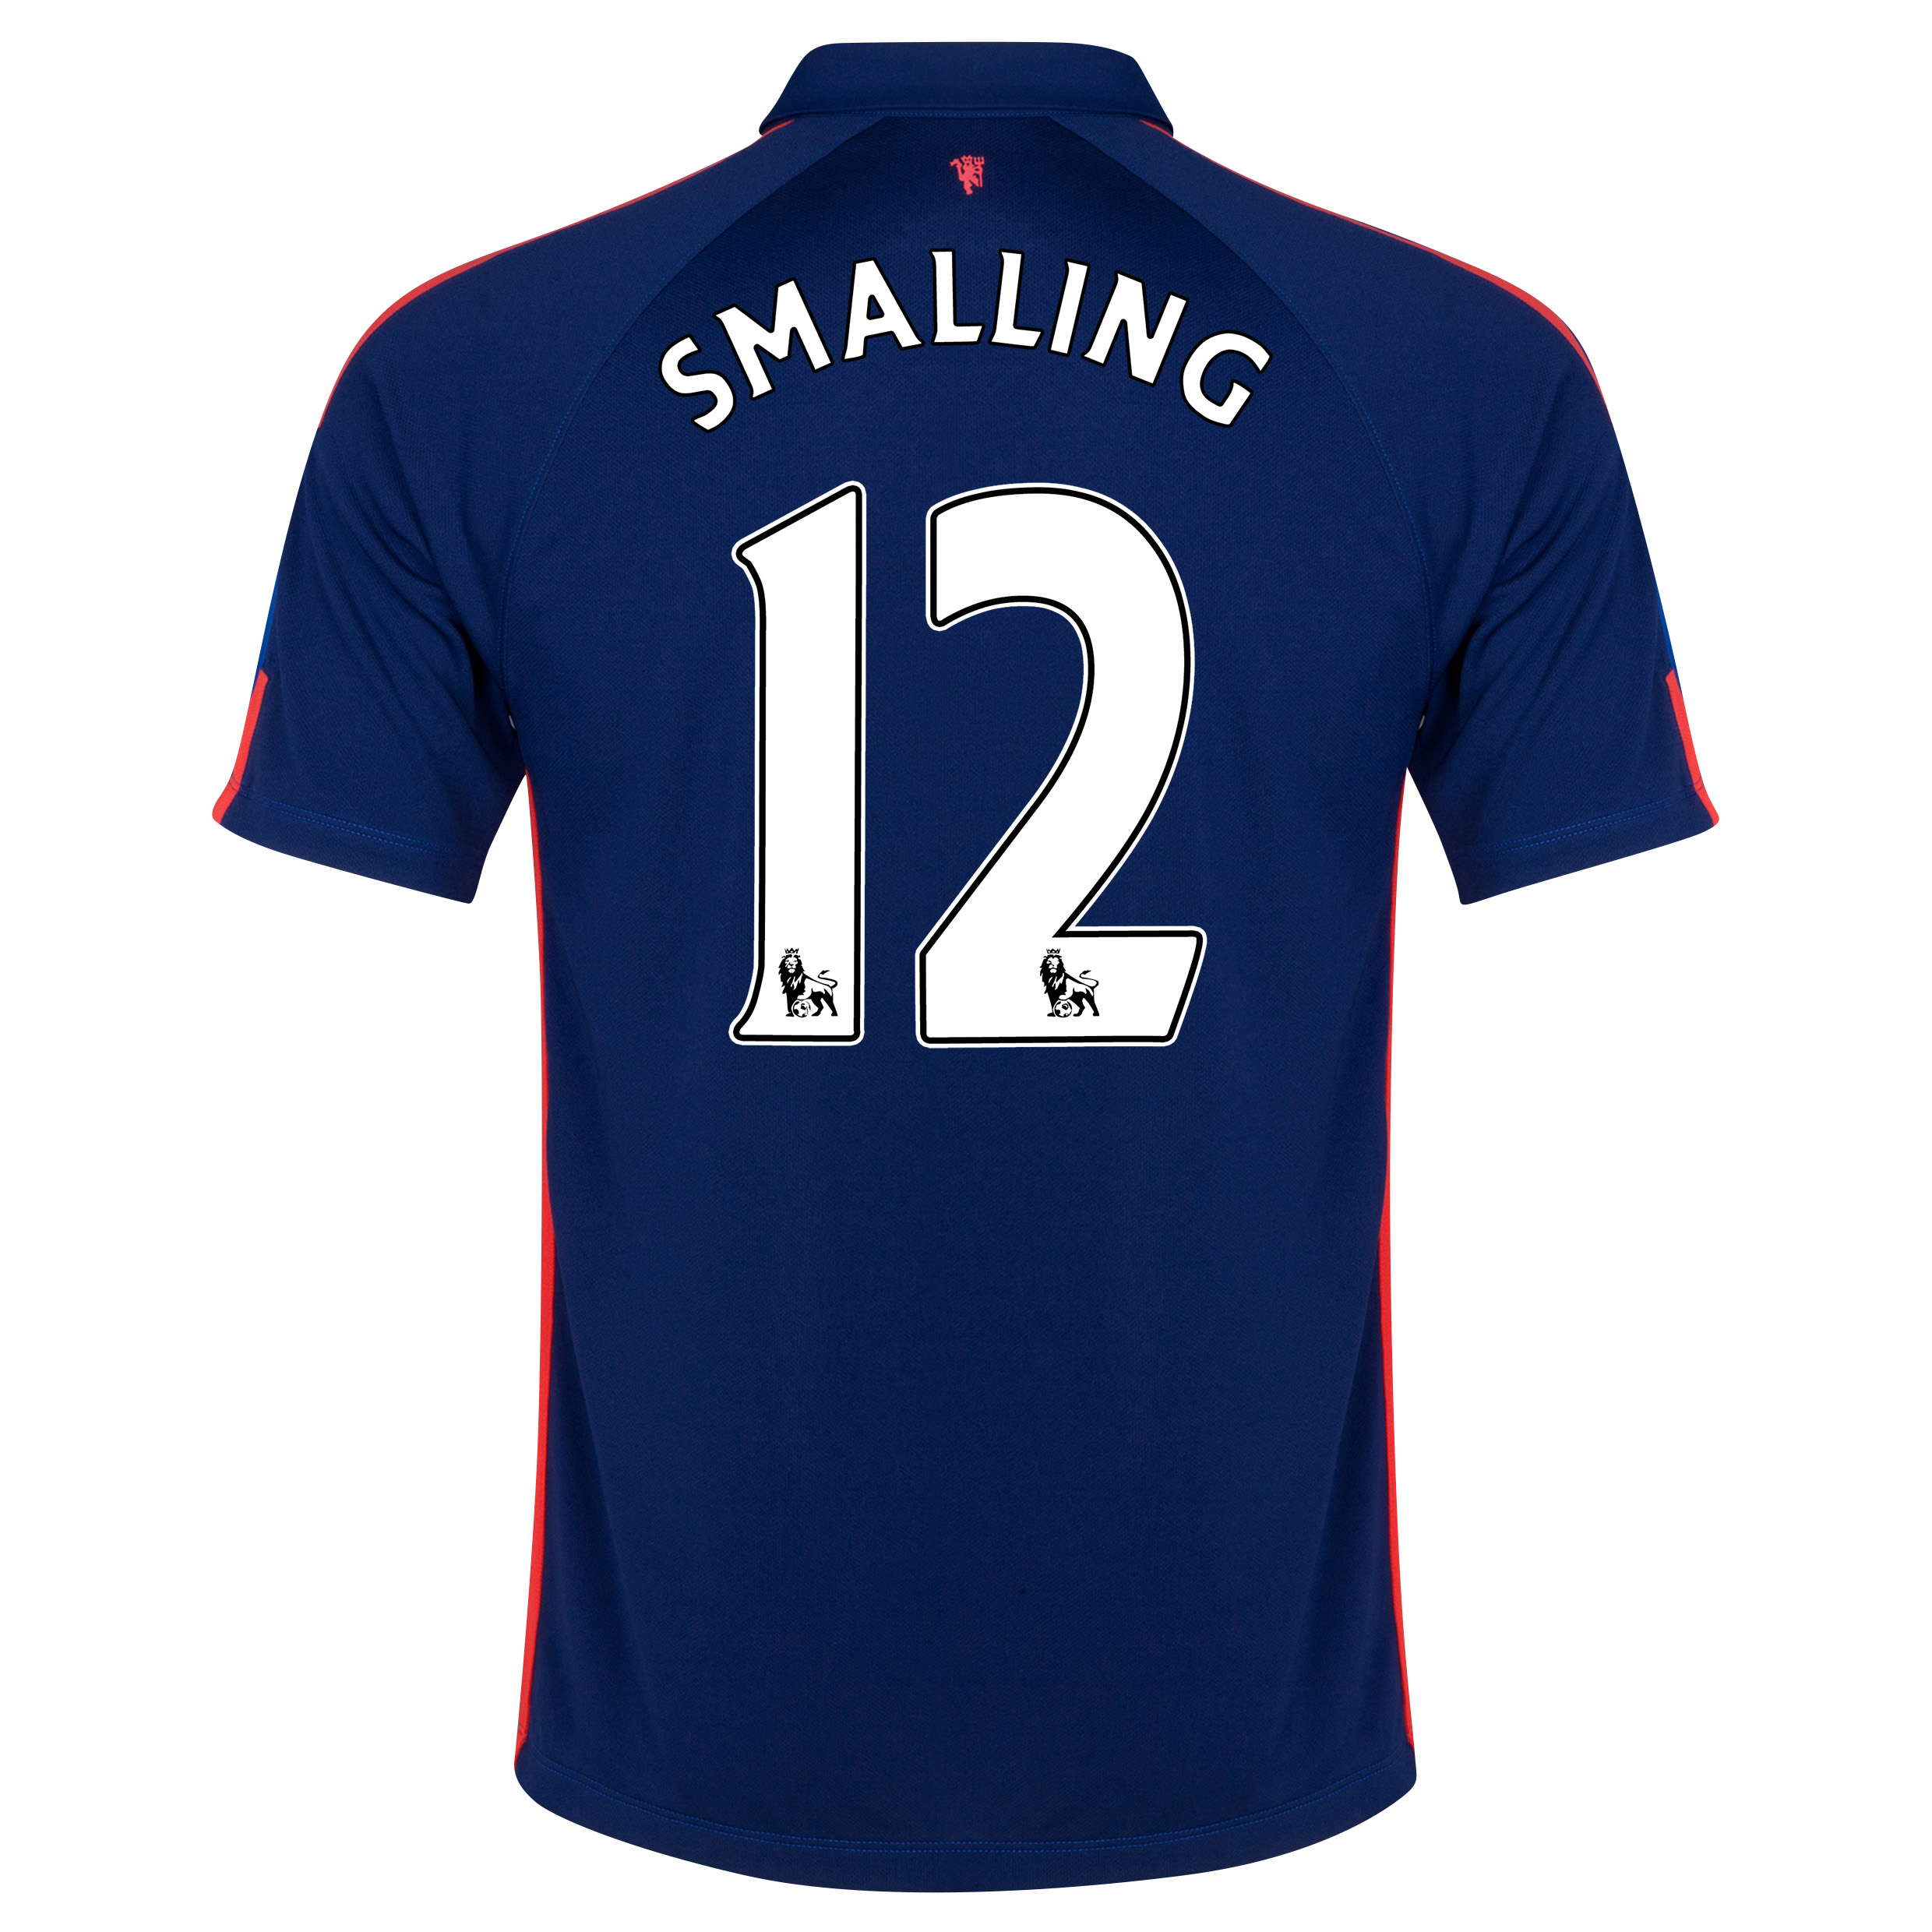 Manchester United Third Kit 2014/15 - Little Boys with Smalling 12 printing